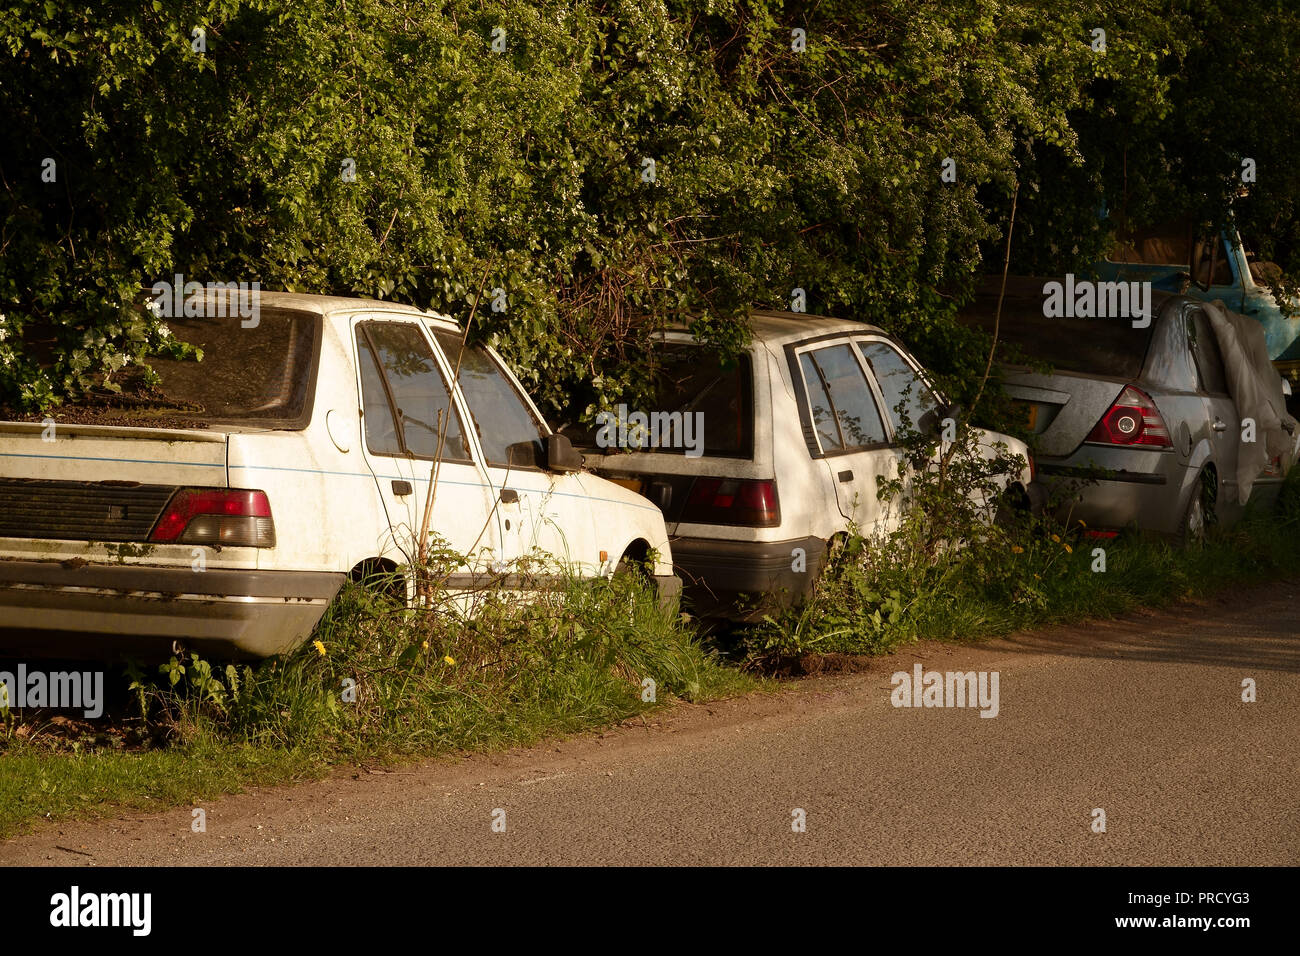 Dumped Cars Stock Photos & Dumped Cars Stock Images - Page 2